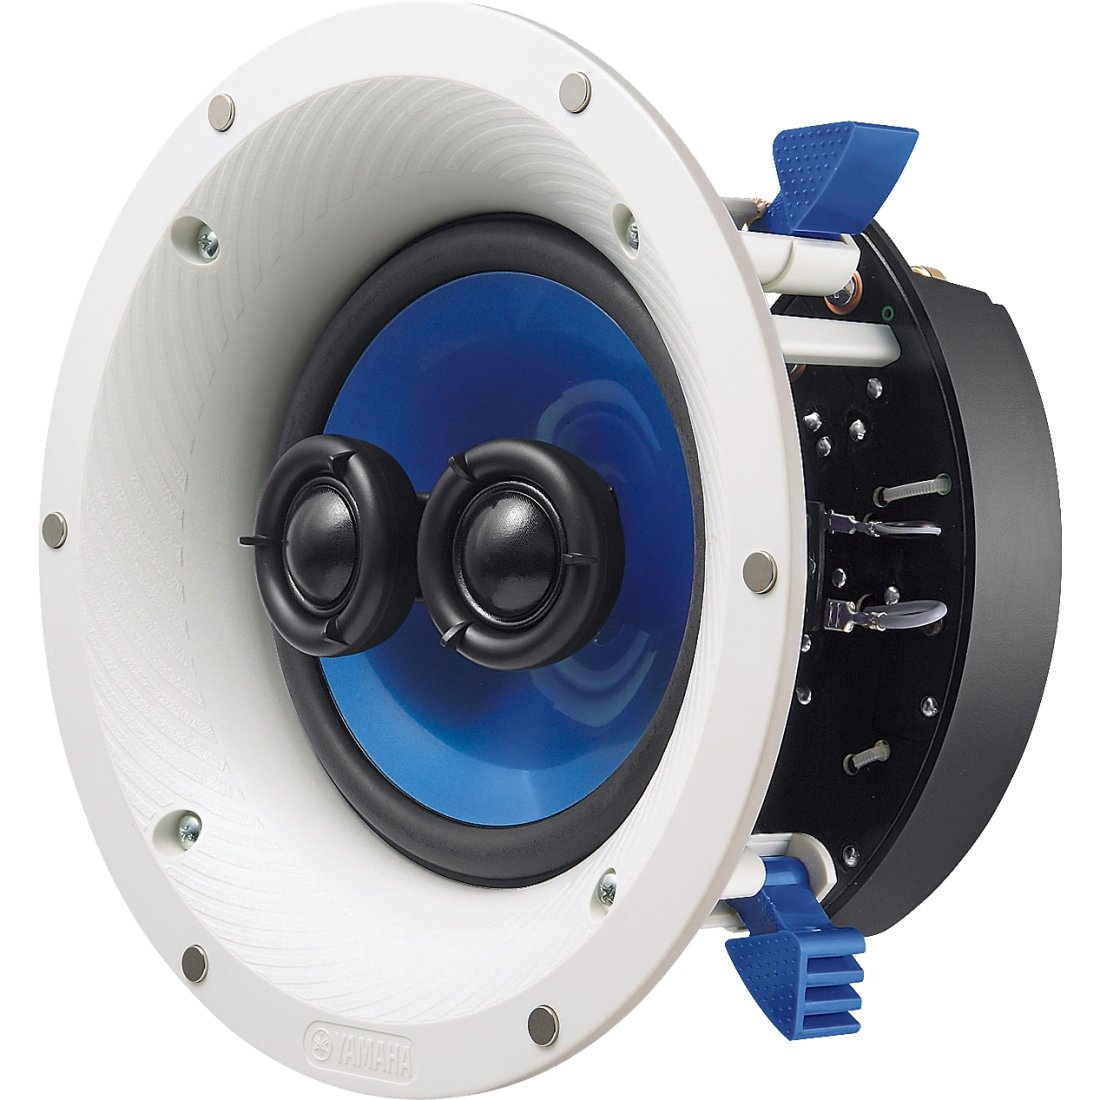 Top 10 in Ceiling Speakers 2014 - 2015